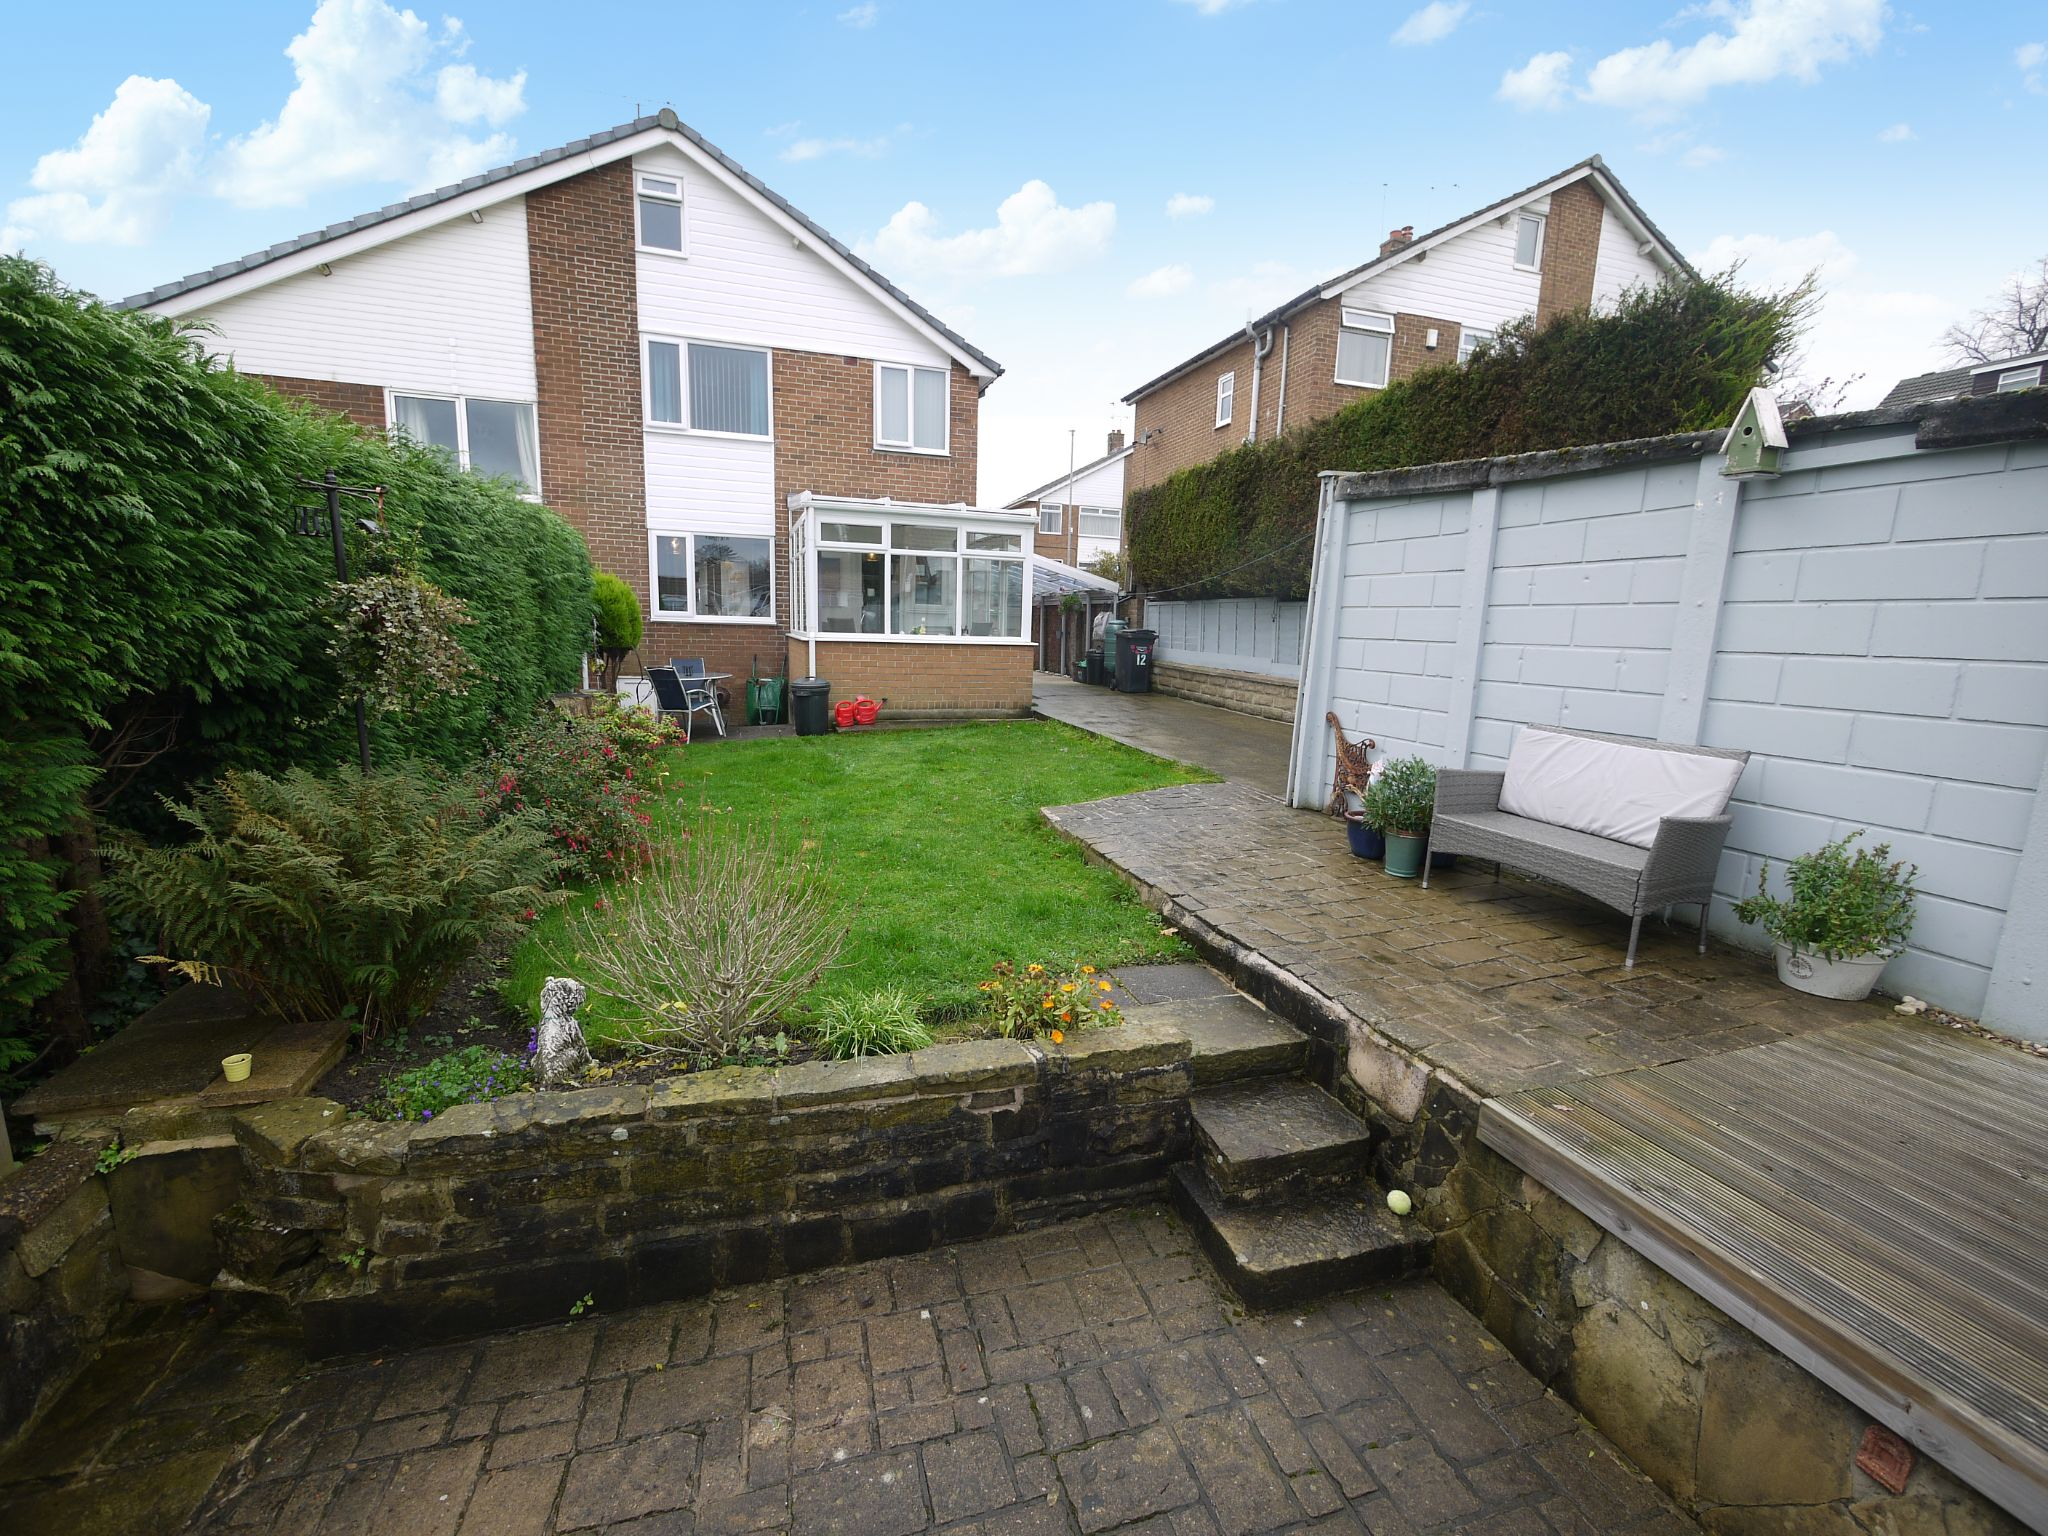 3 bedroom semi-detached house SSTC in Brighouse - Rear 2.